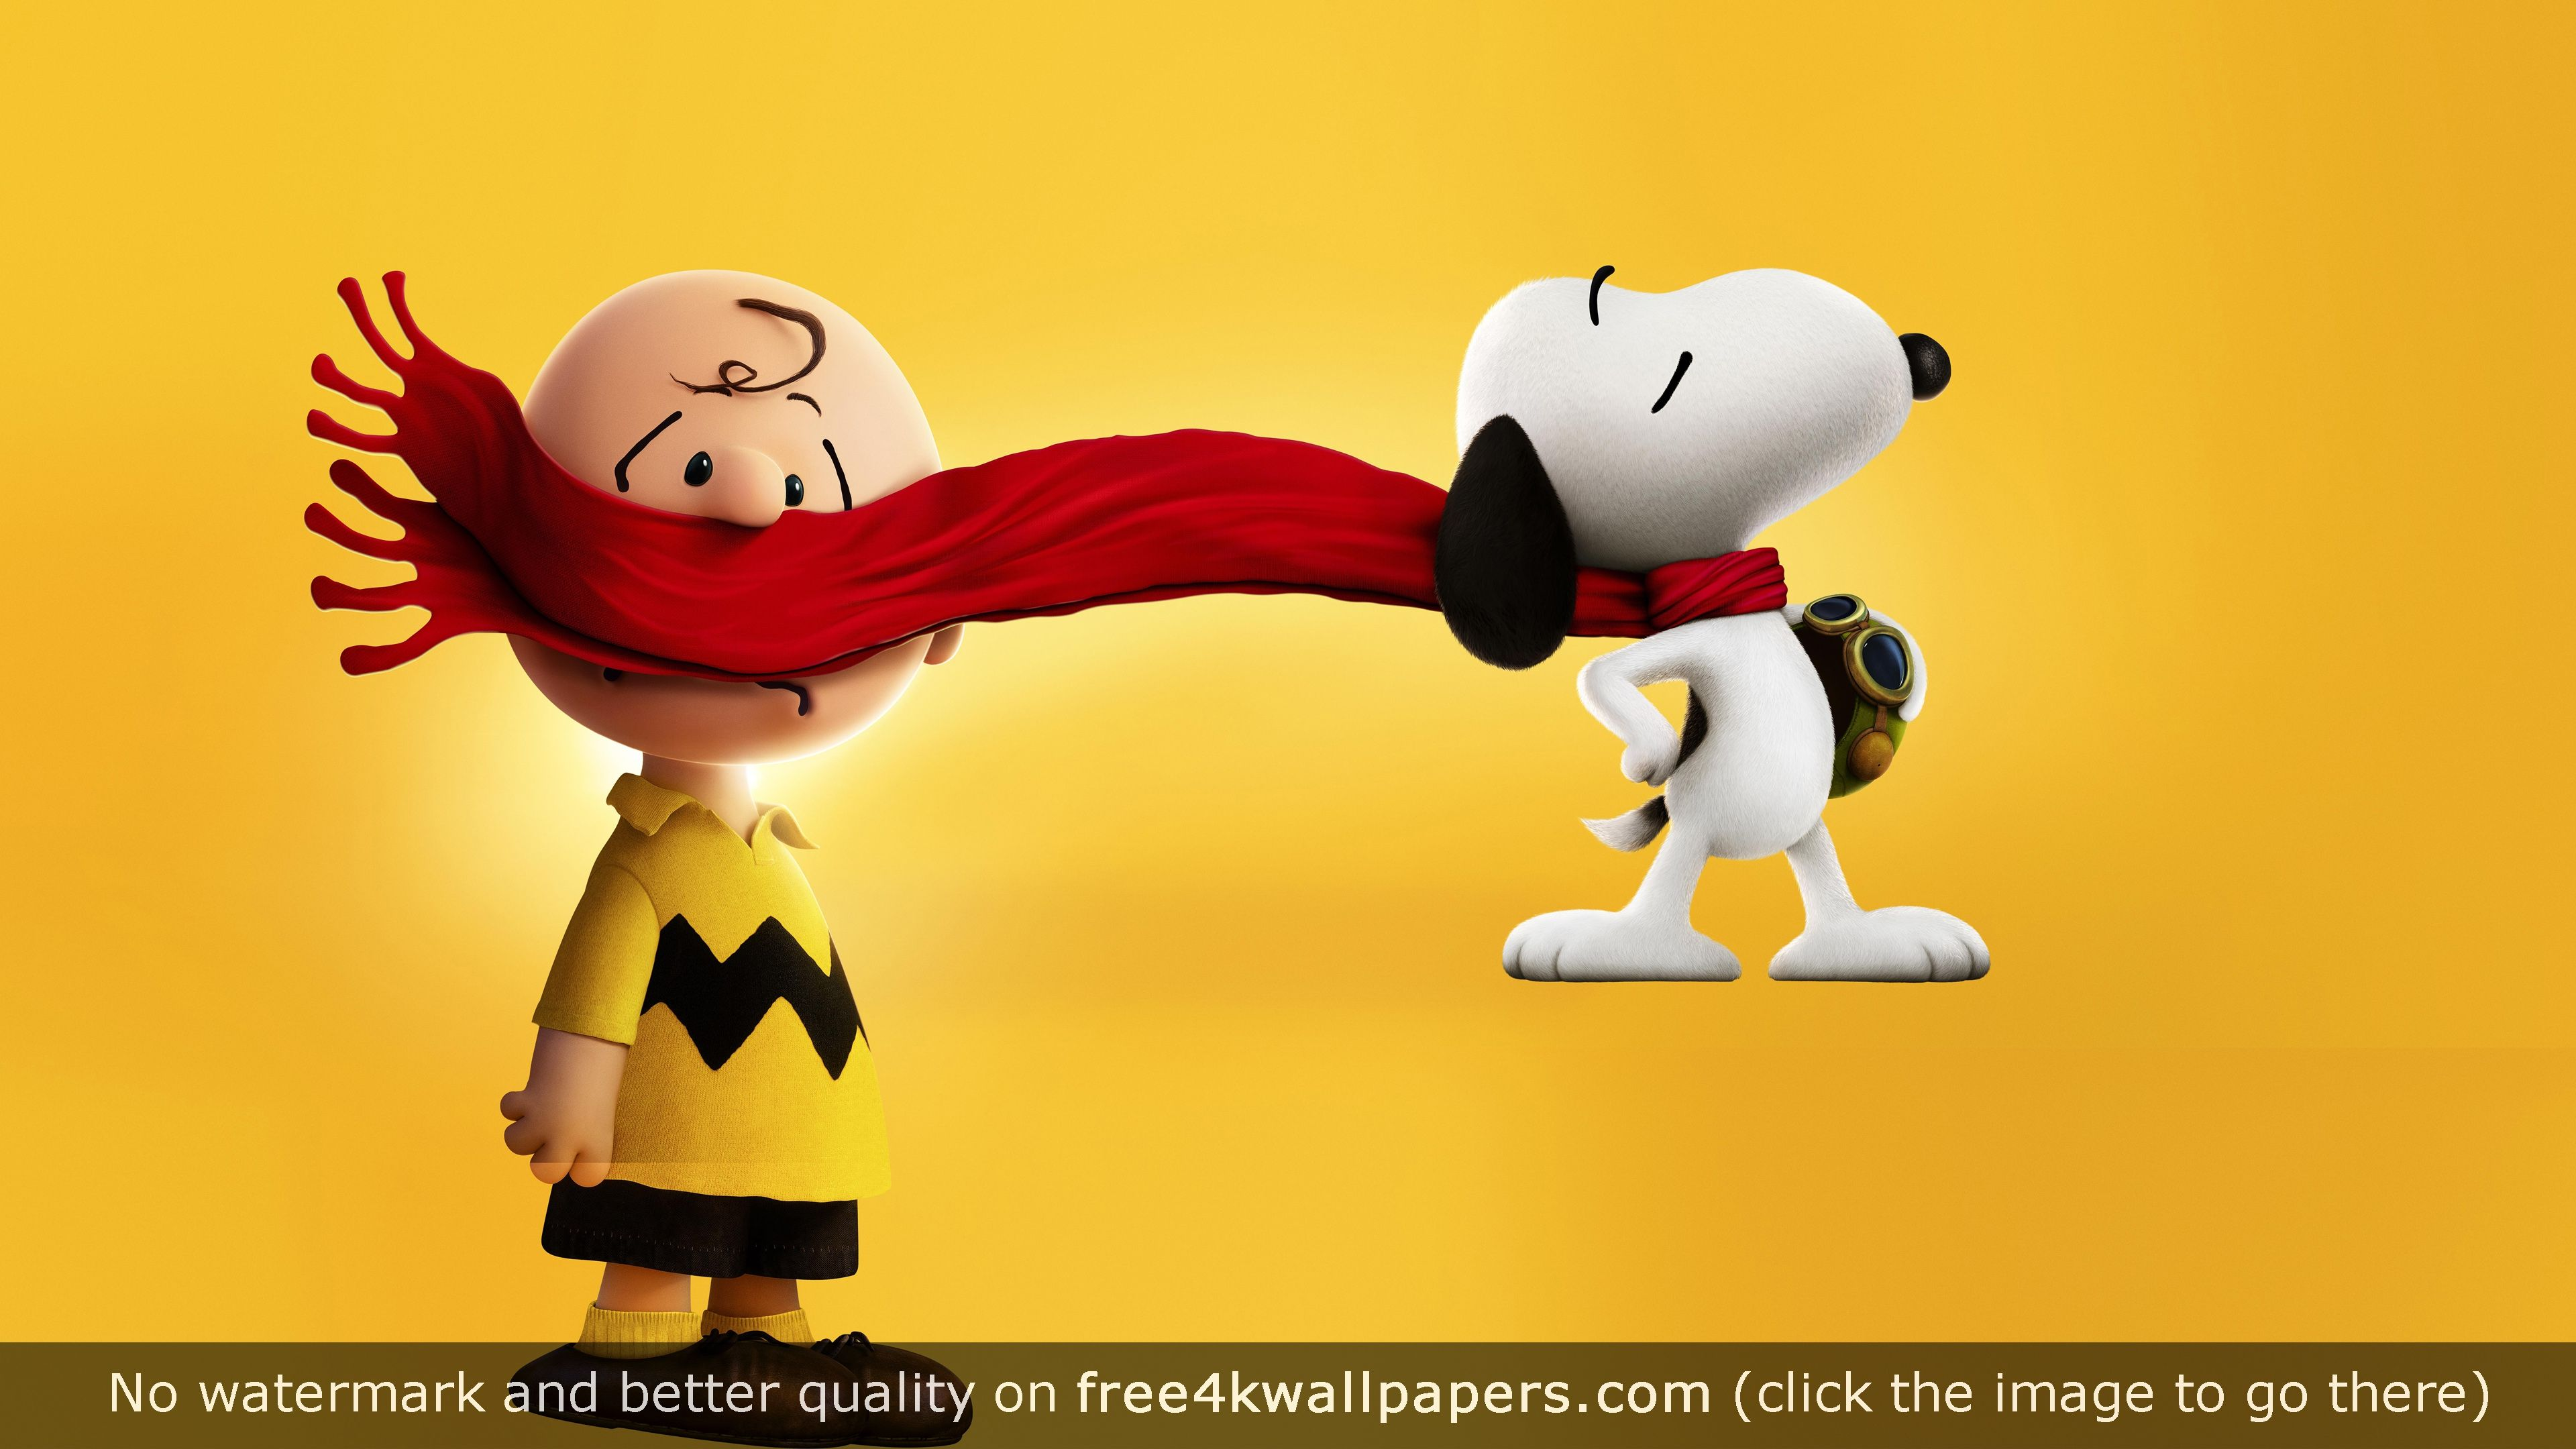 Best snoopy wallpapers for your PC Mac or Mobile Device 3840x2160